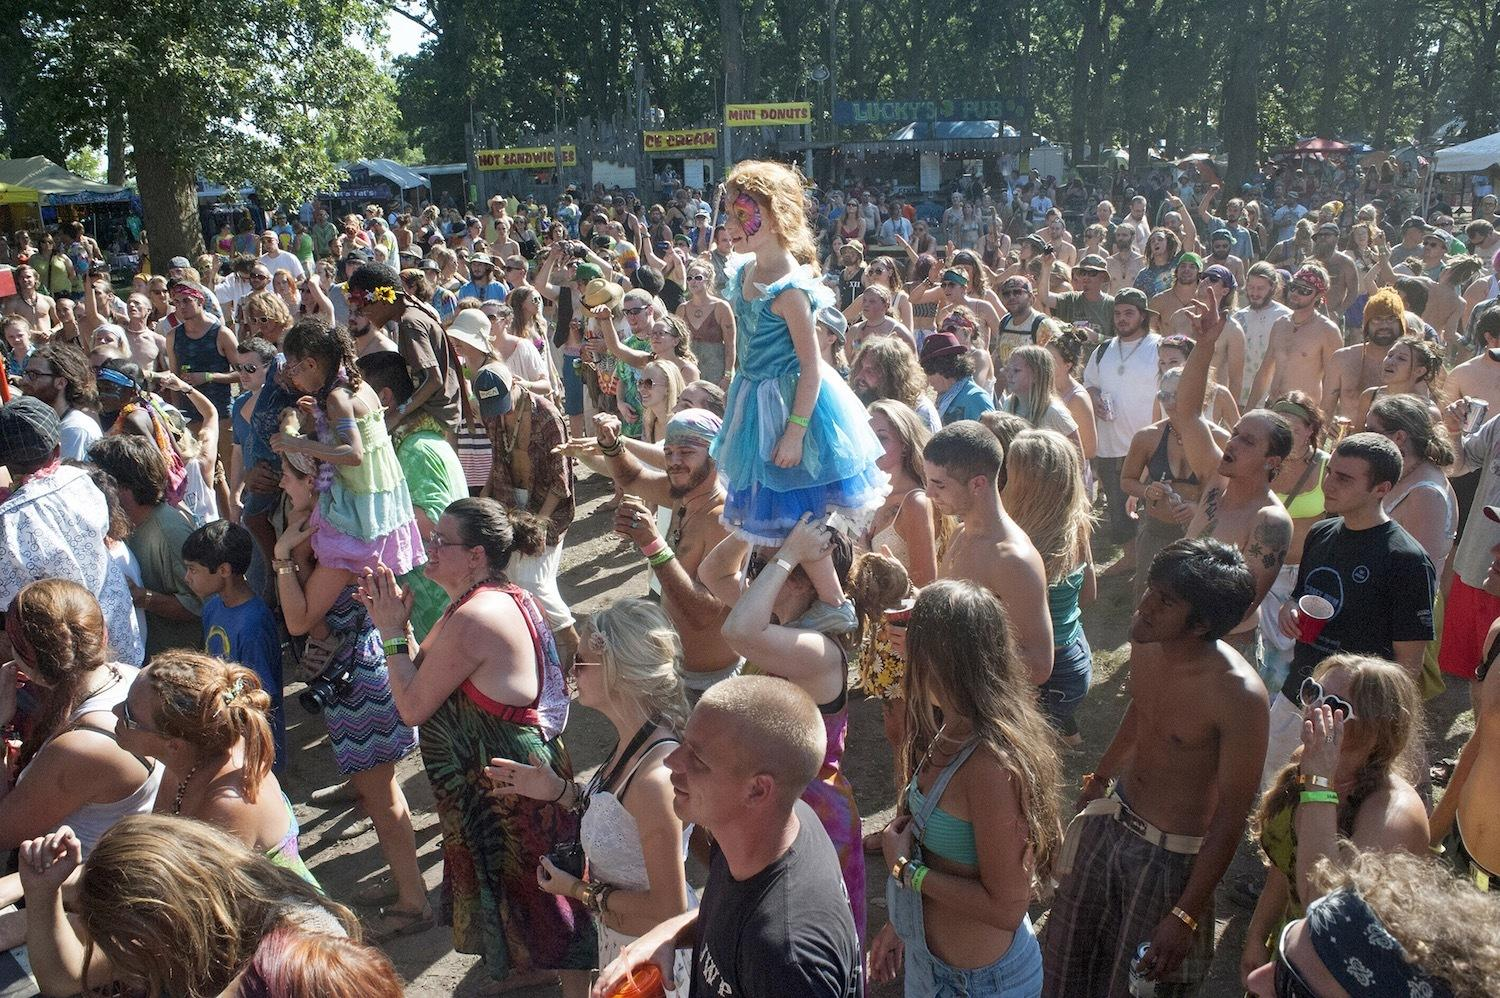 the-naked-ecstatic-world-of-americas-neo-hippies-body-image-1452638448